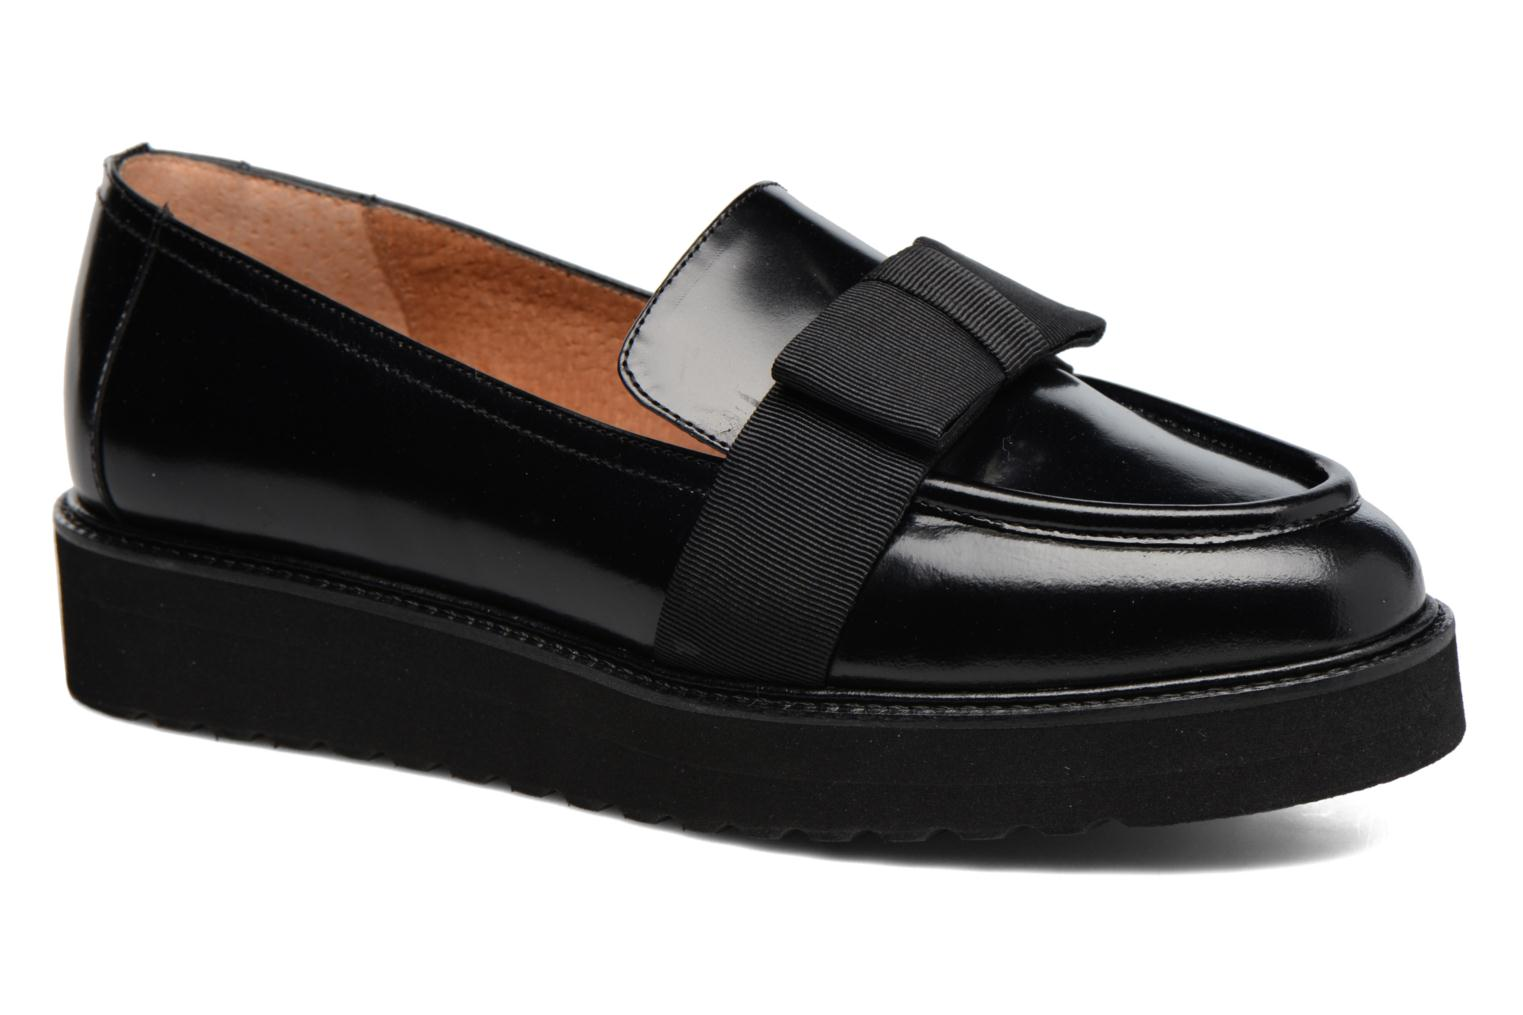 sale cheap prices JONAK Denly Leather Loafers cheap sale in China sale discount sale fashionable clearance sale online xva8yFN